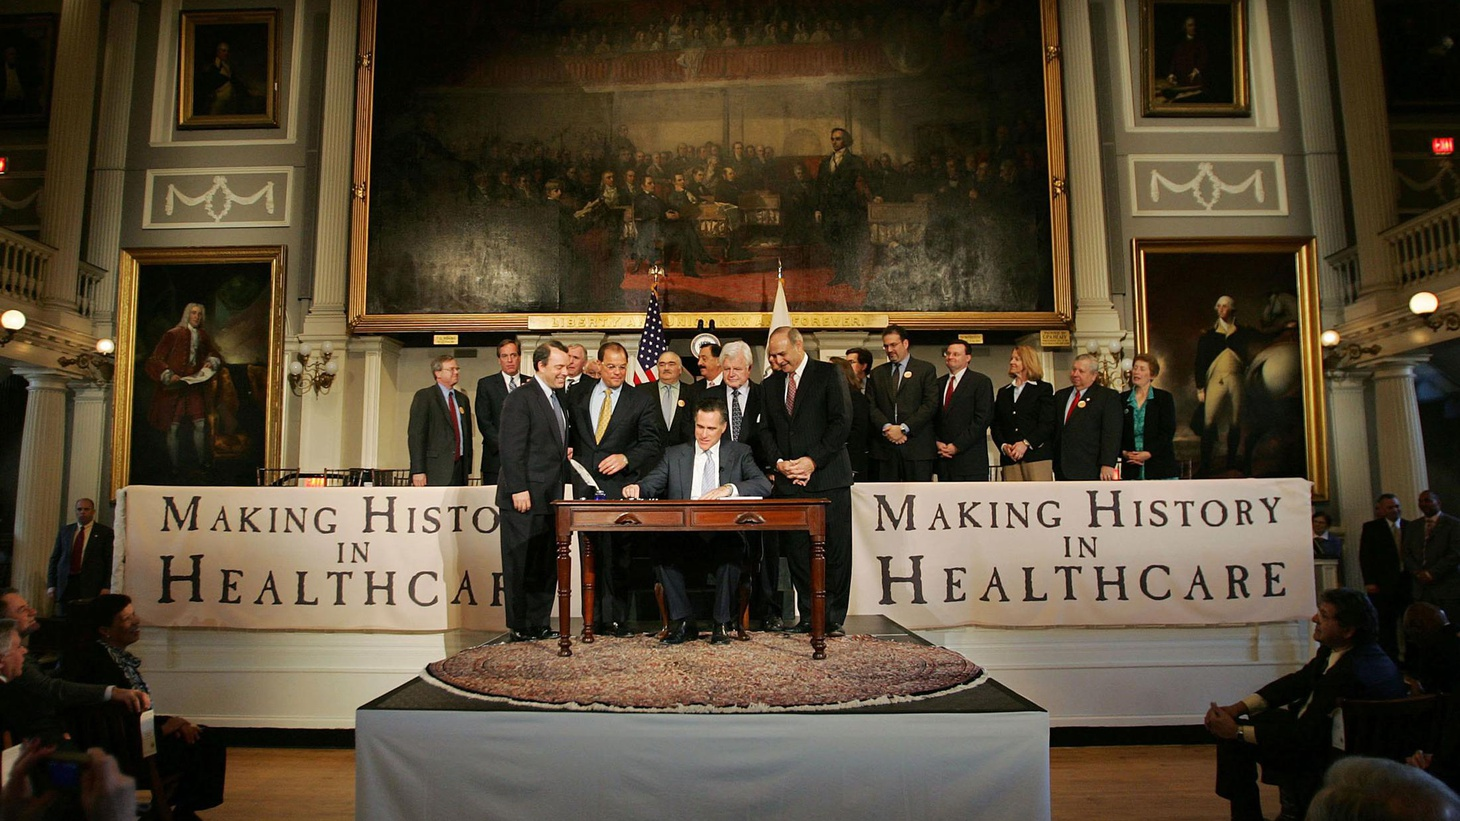 Healthcare reform is being used as a campaign issue against President 